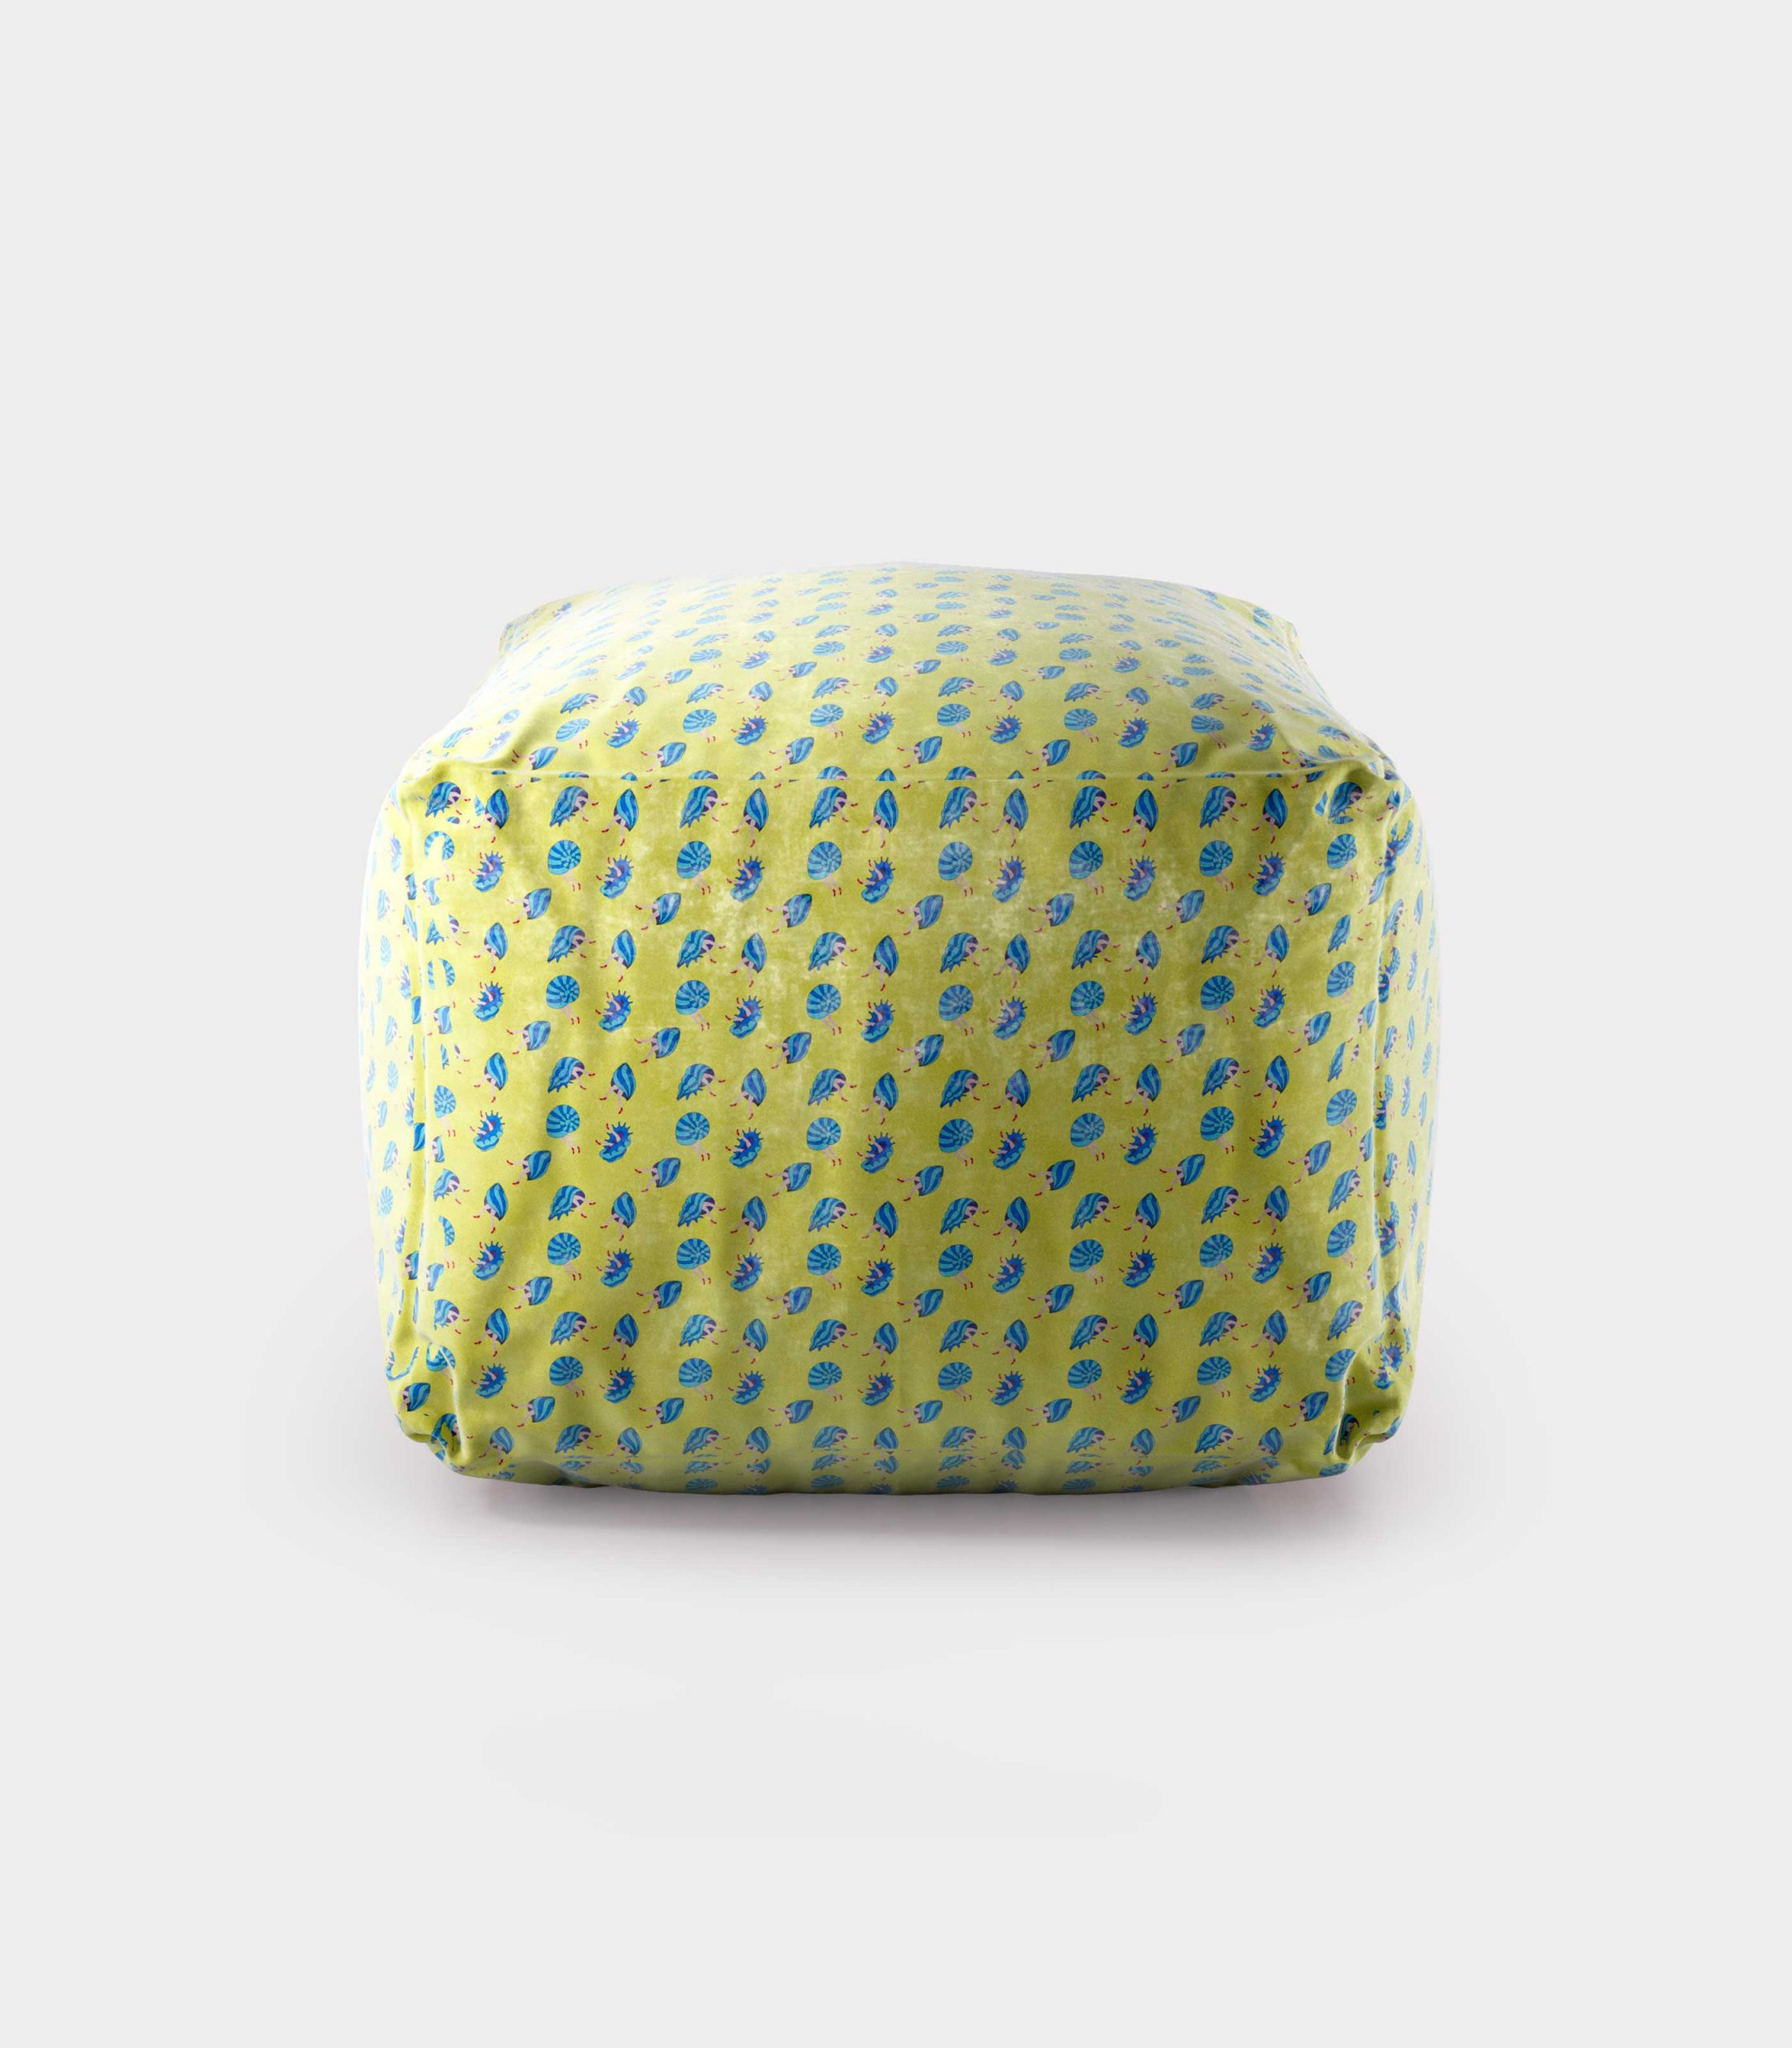 """Polystyrene Pouf with """"Shells and Legs"""" pattern loopo milan design F"""